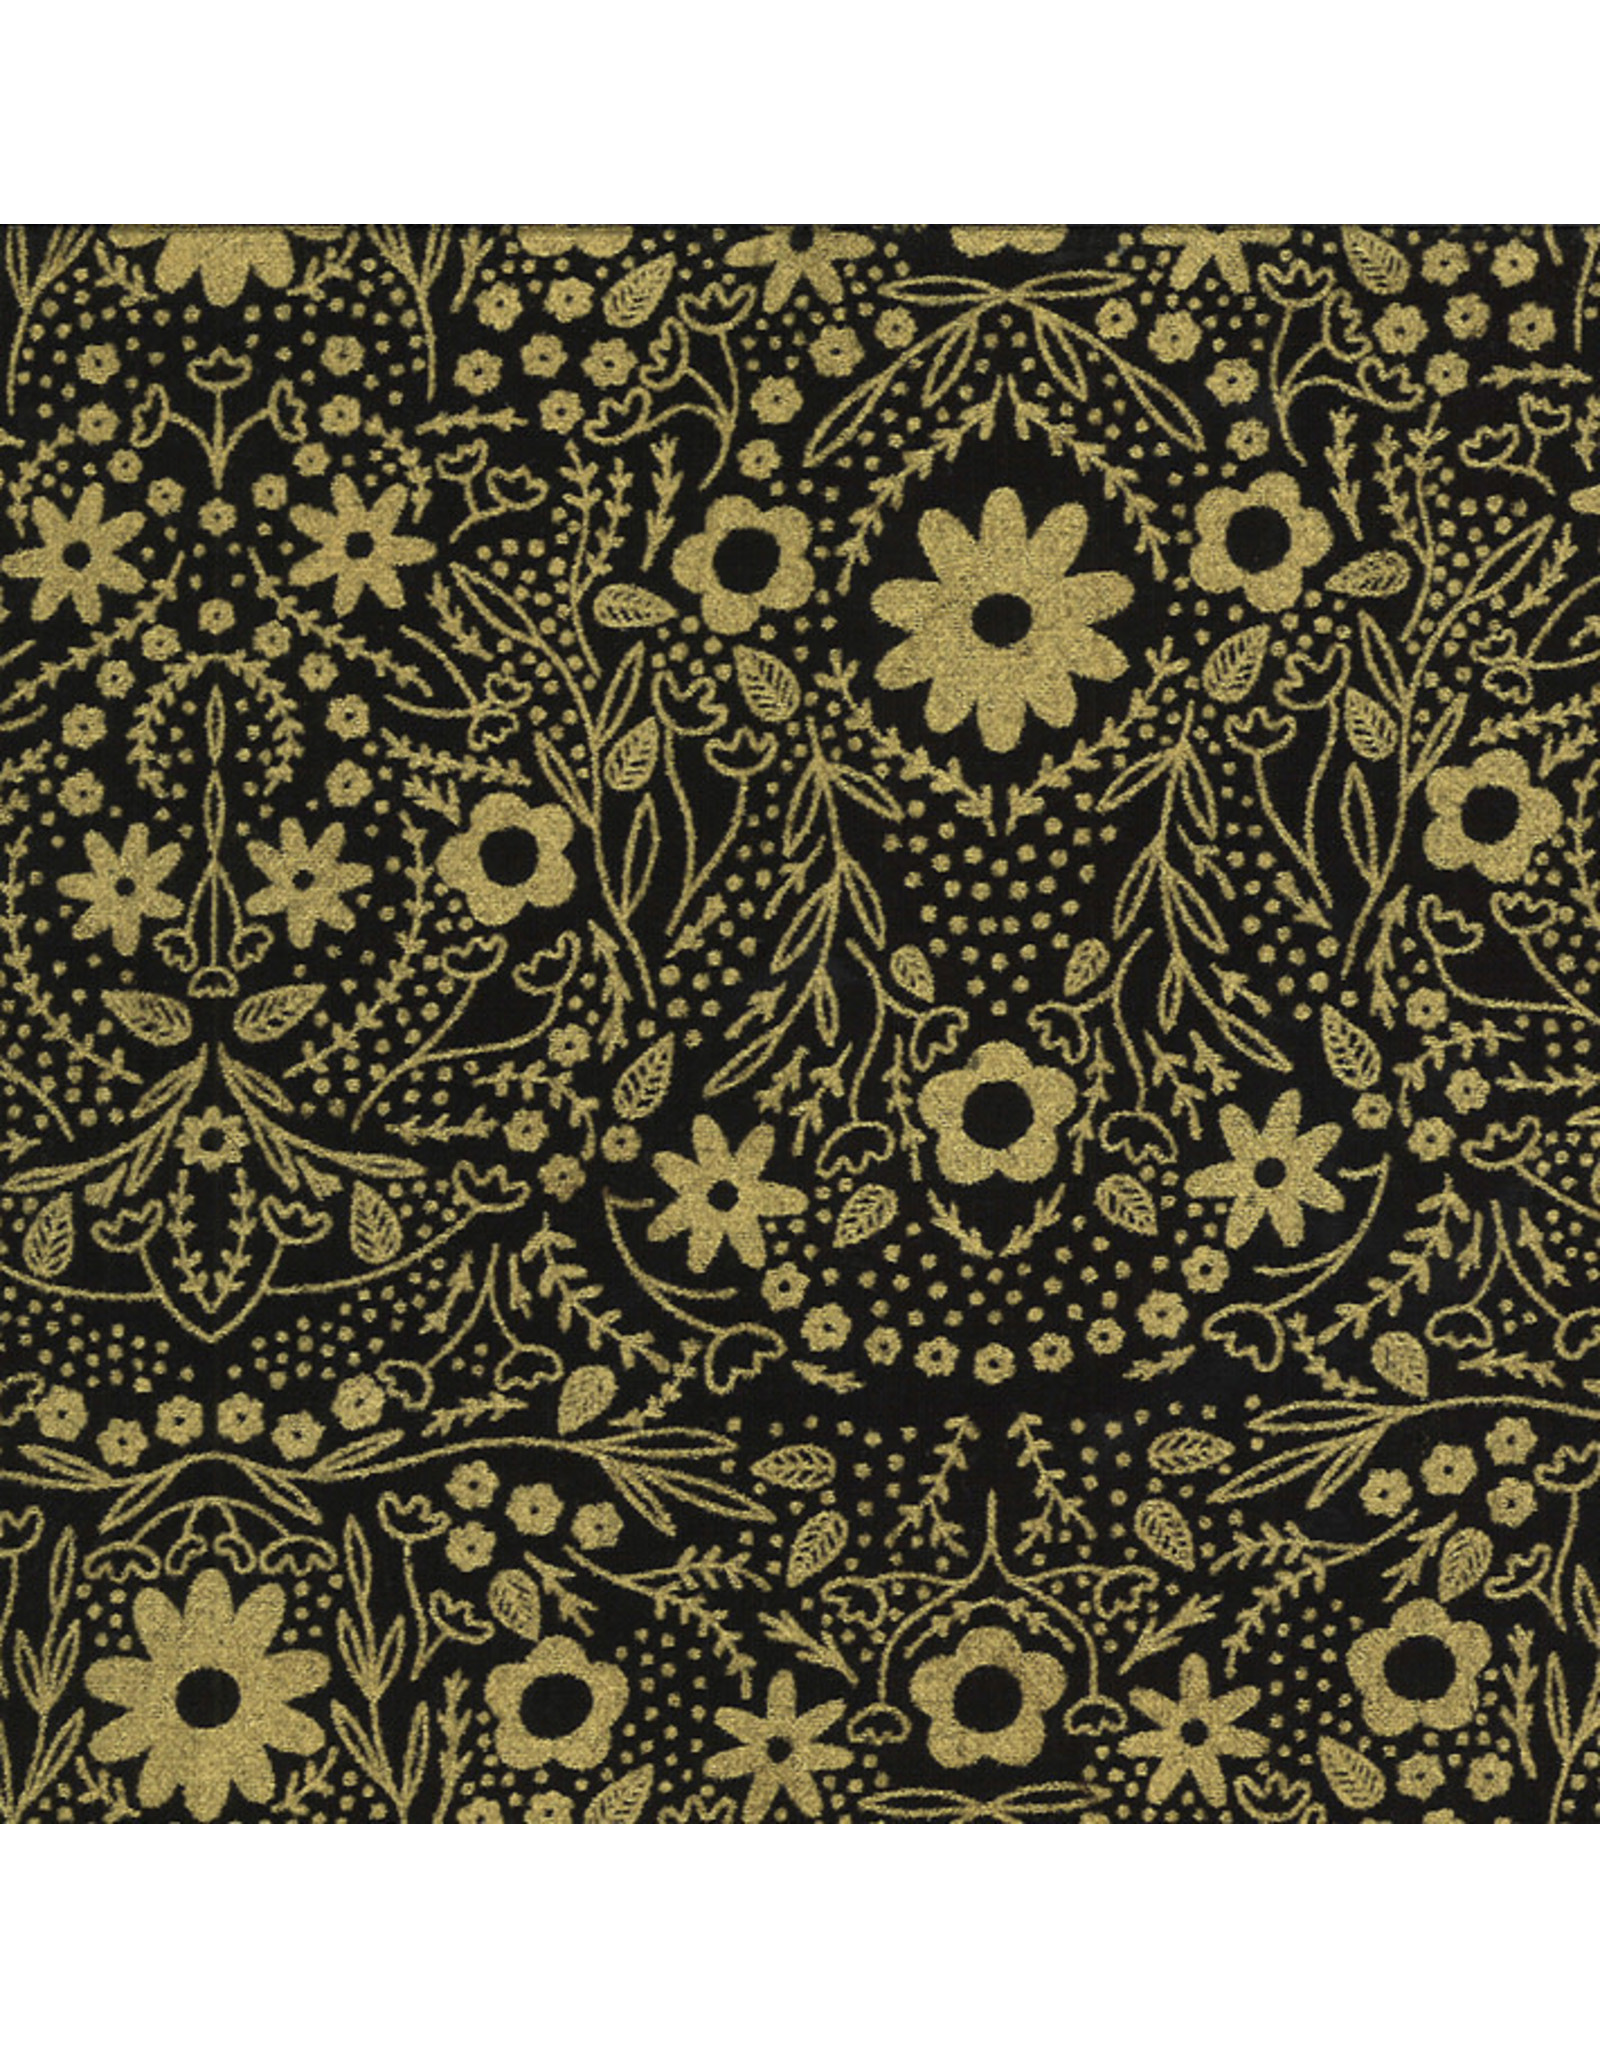 Gingiber Dwell in Possibility, Full Bloom in Night Gold with Gold Metallic, Fabric Half-Yards